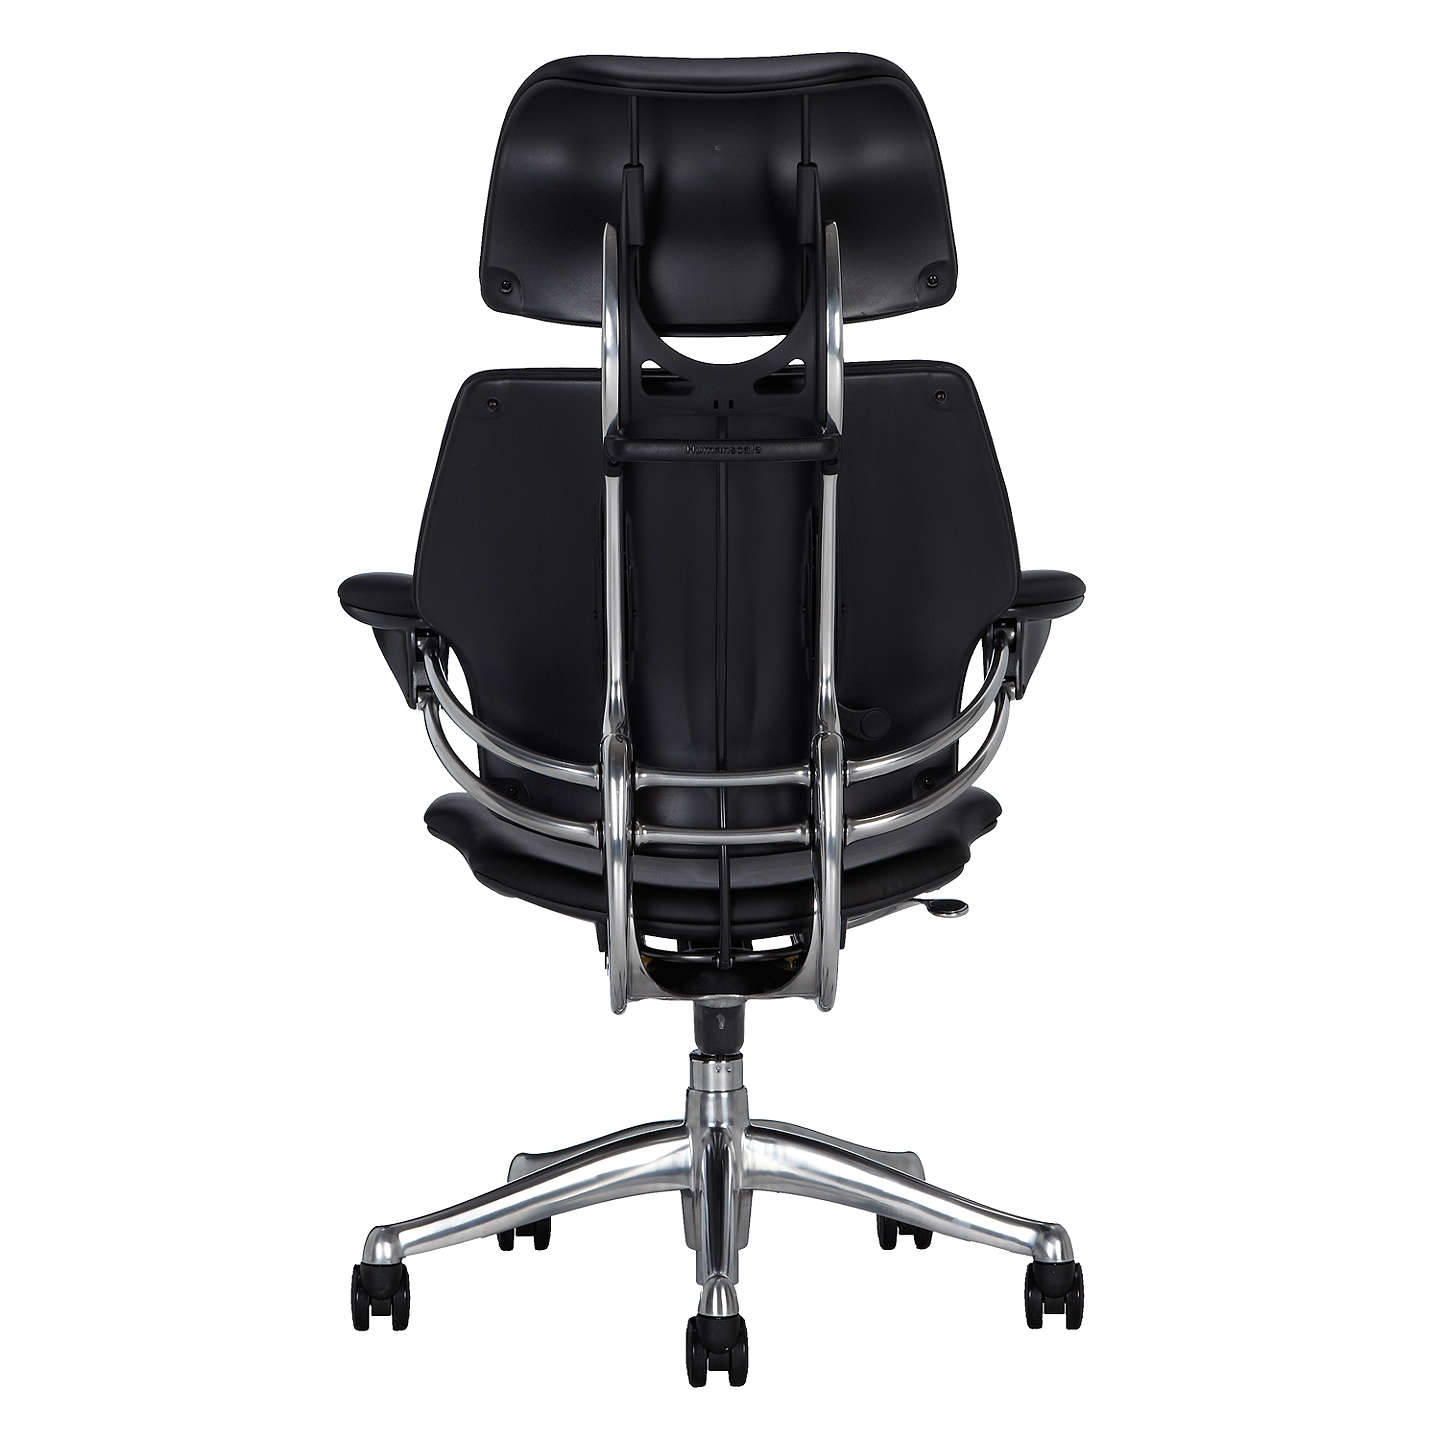 BuyHumanscale Freedom Office Chair with Headrest, Black Online at johnlewis.com